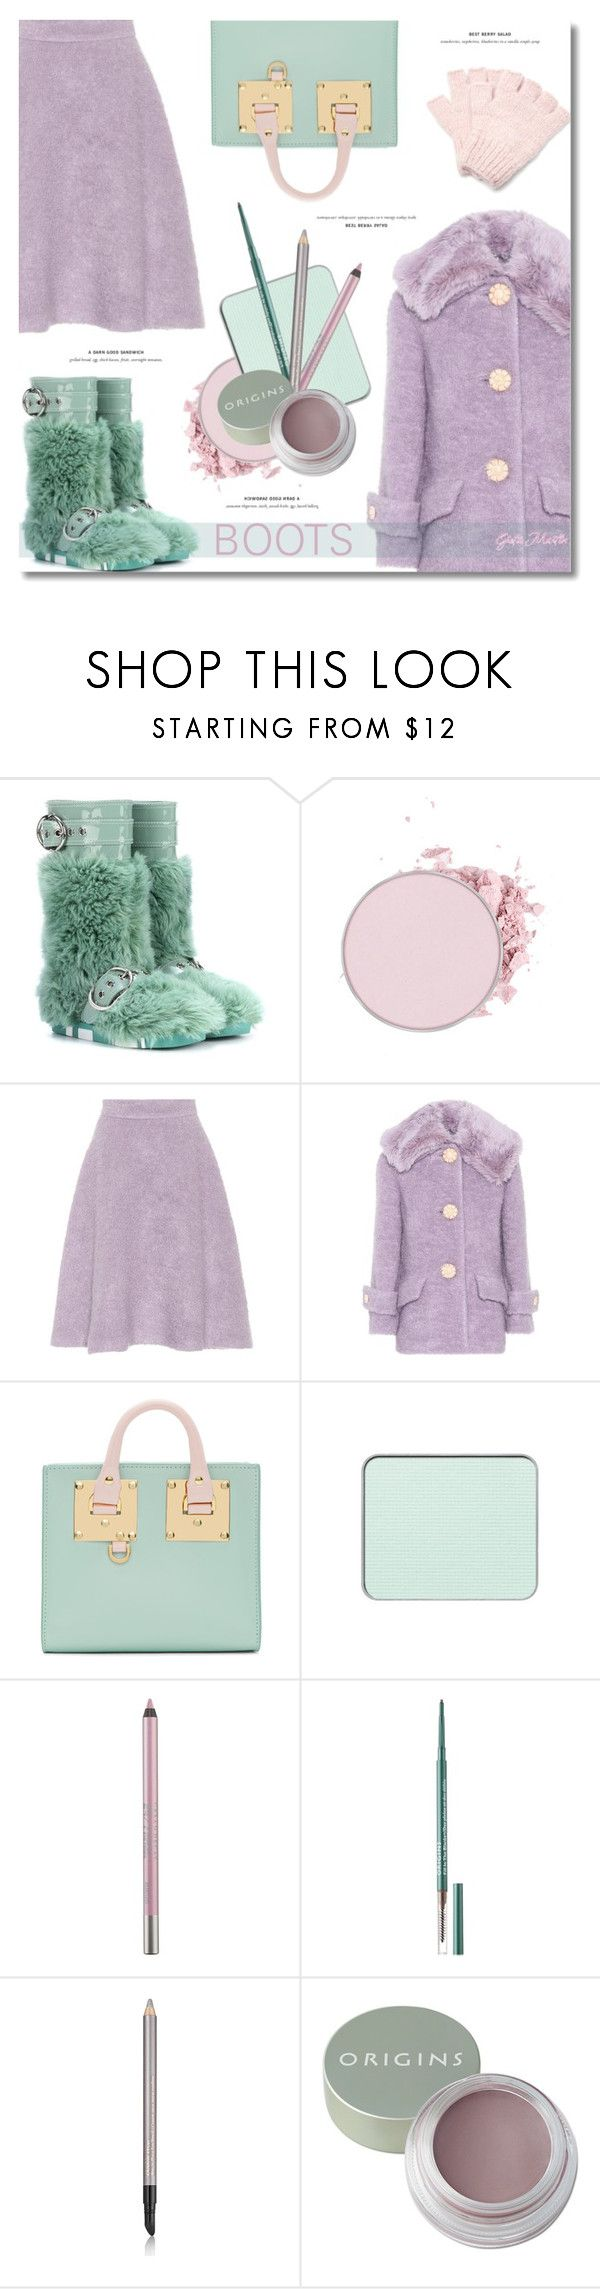 """Boots Fall  .... 2017"" by greta-martin ❤ liked on Polyvore featuring Miu Miu, Sophie Hulme, Urban Decay, Origins, Estée Lauder, The Elder Statesman, Boots, CasualChic and pastels"